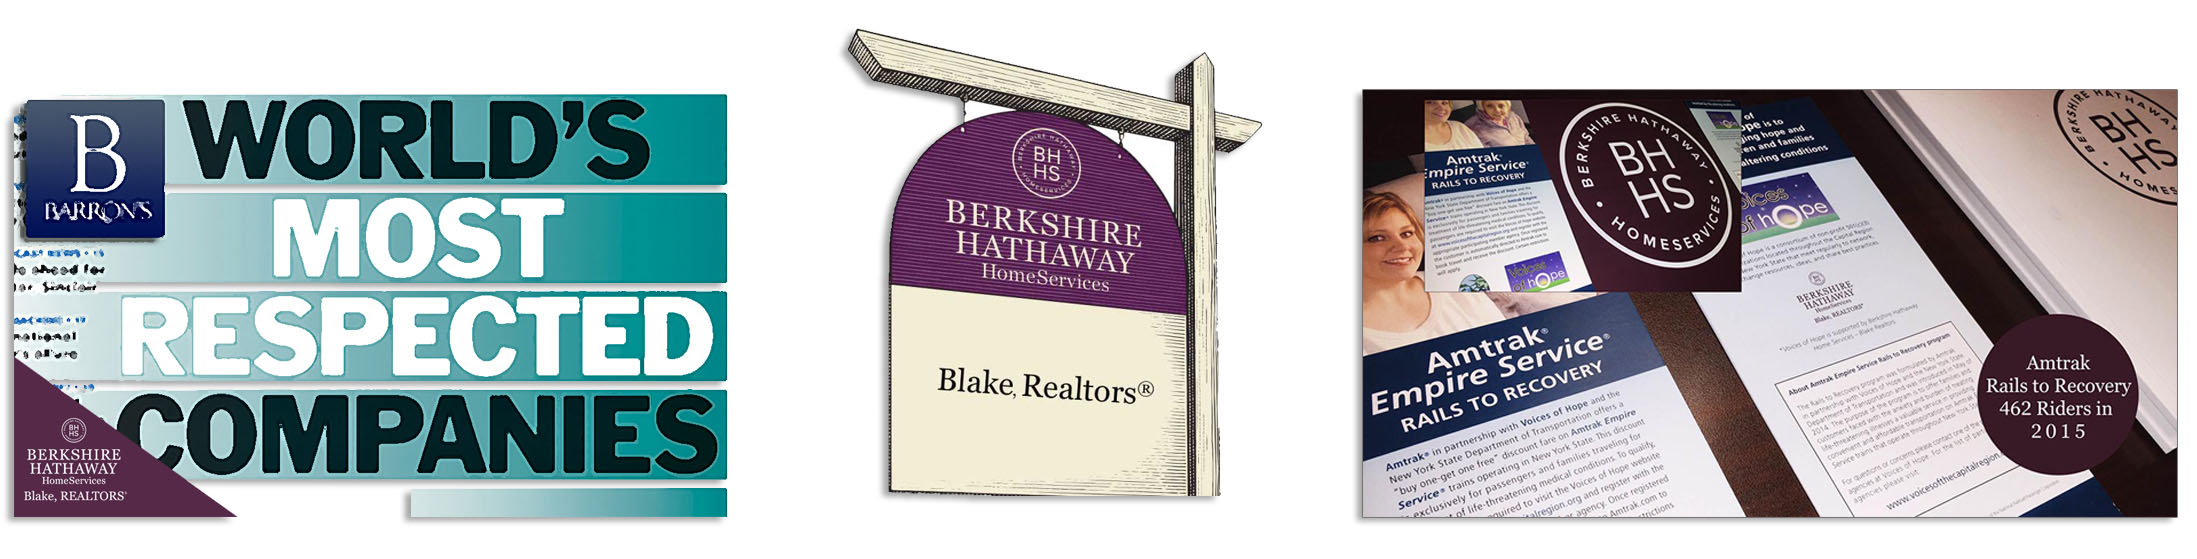 Value Proposition — Berkshire Hathaway Home Services, Blake